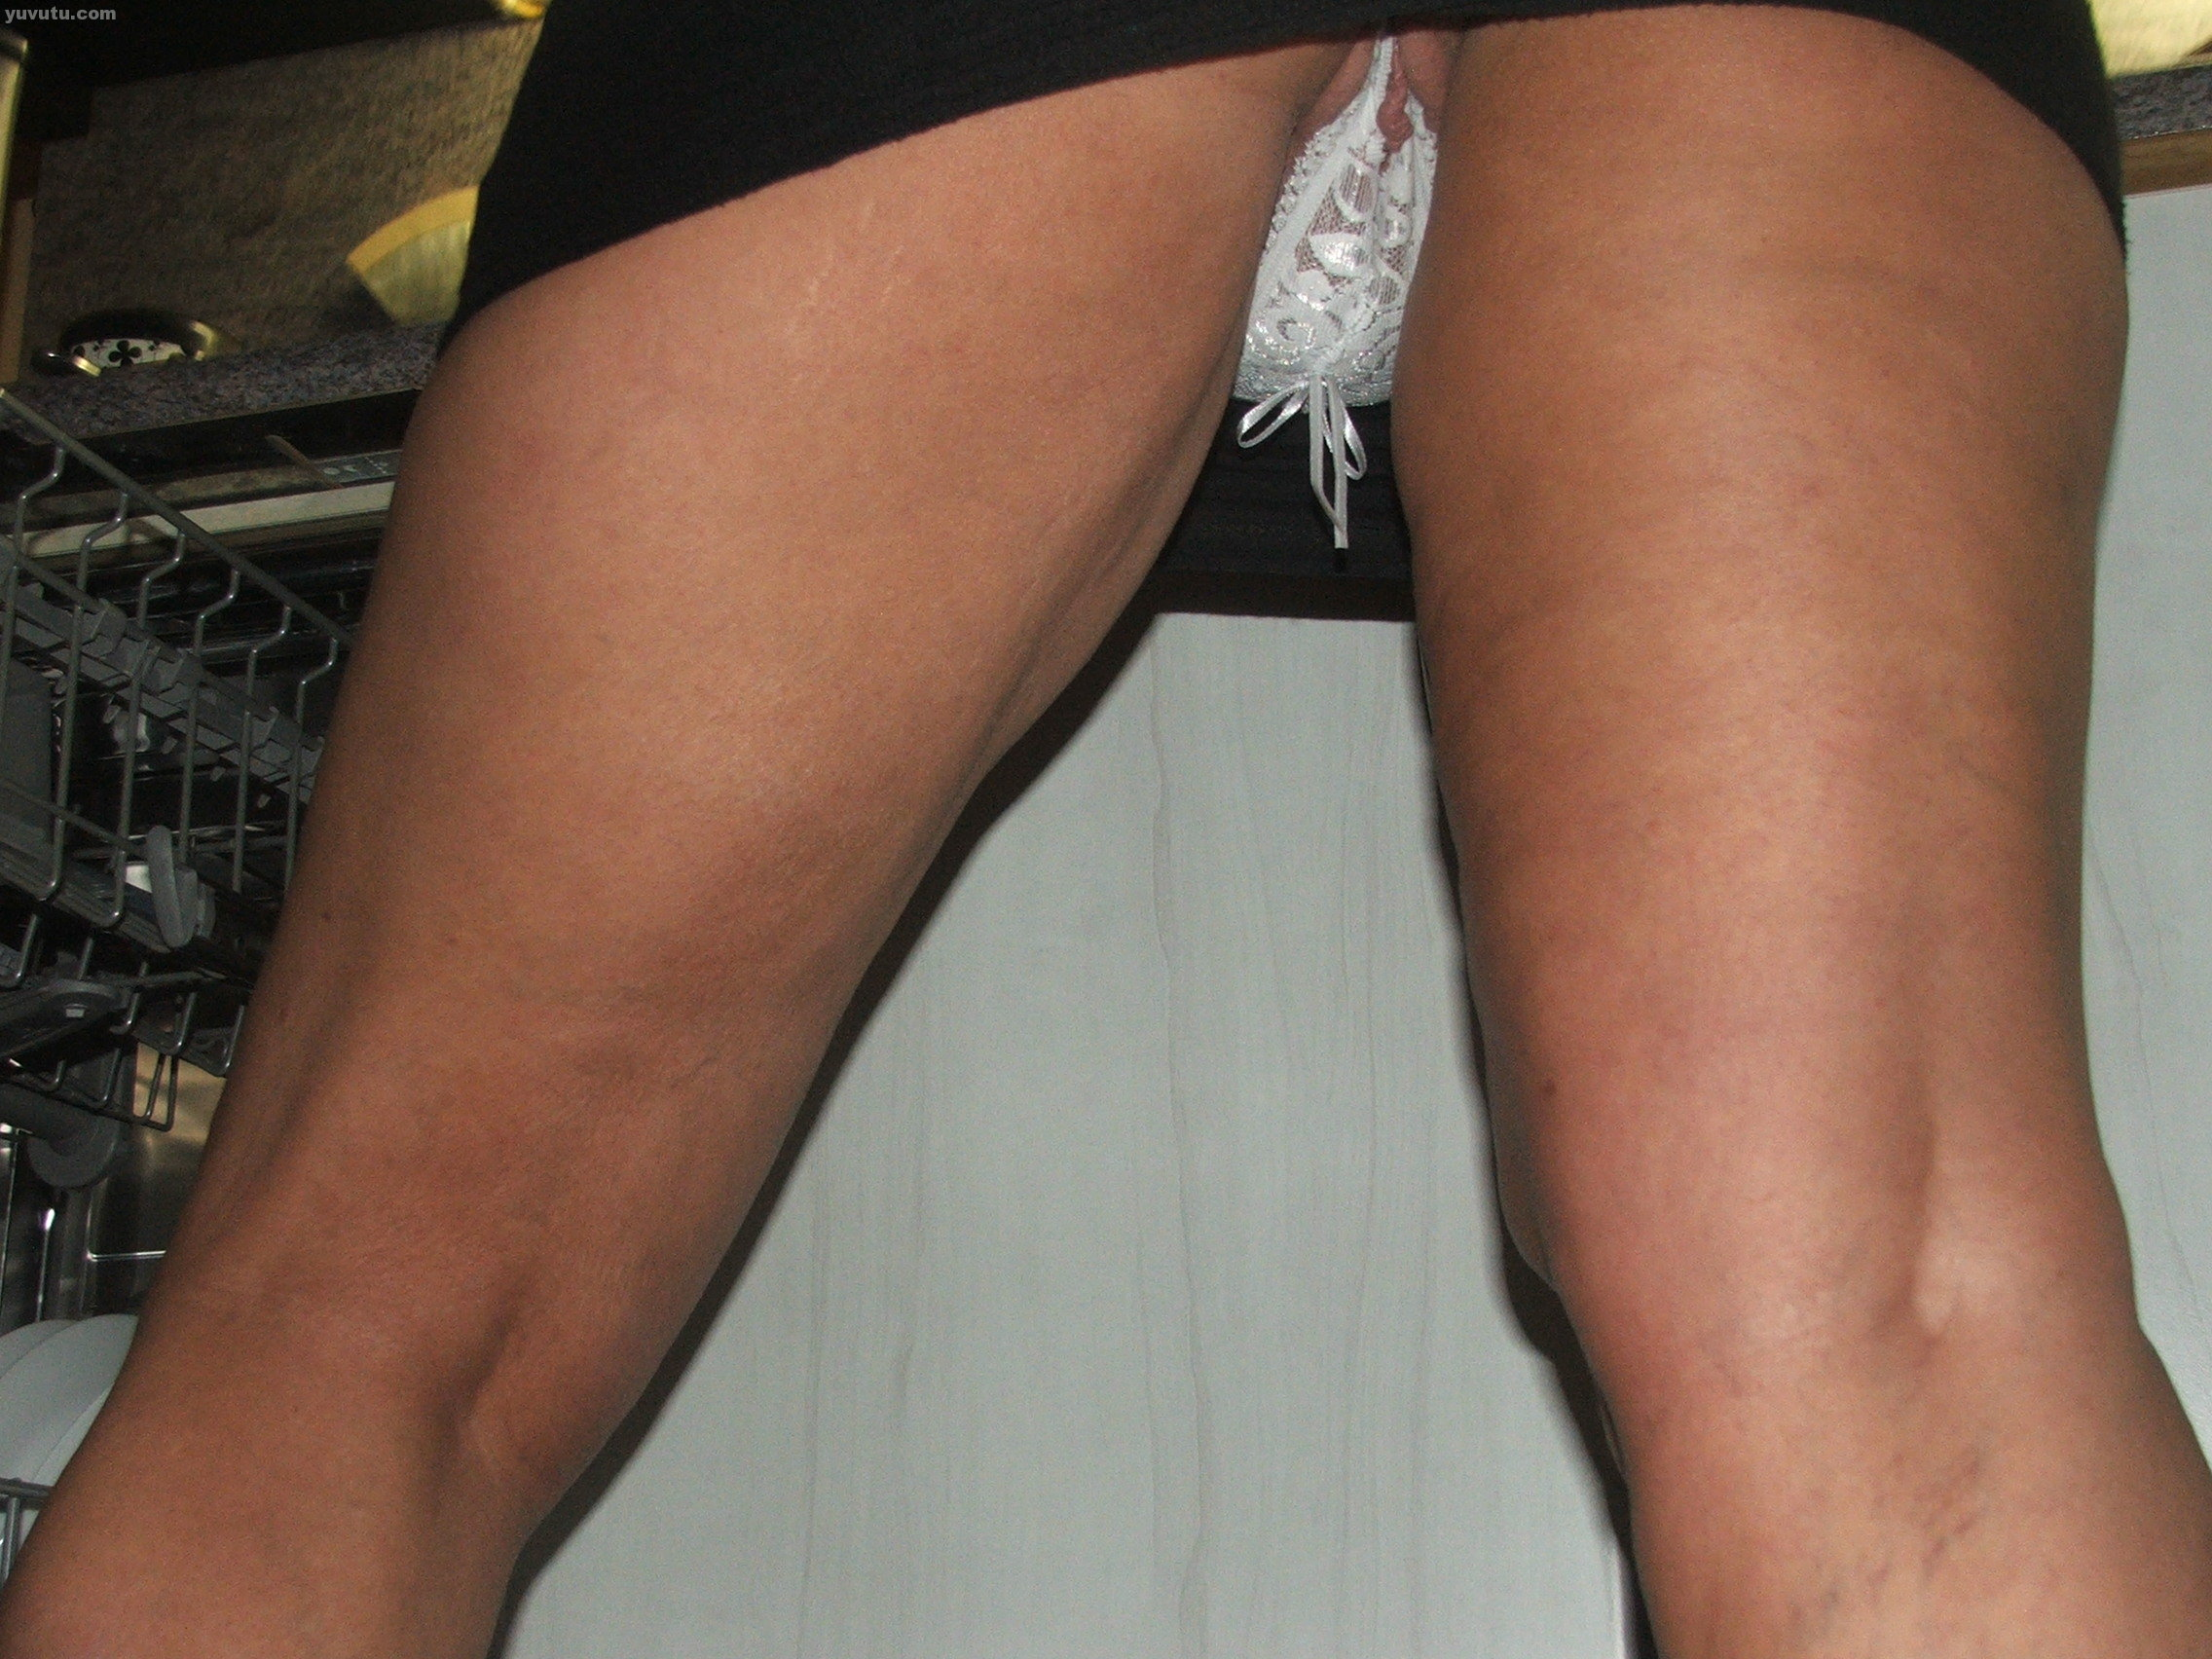 upskirt crocthless upskirt black dress crotchless white panty